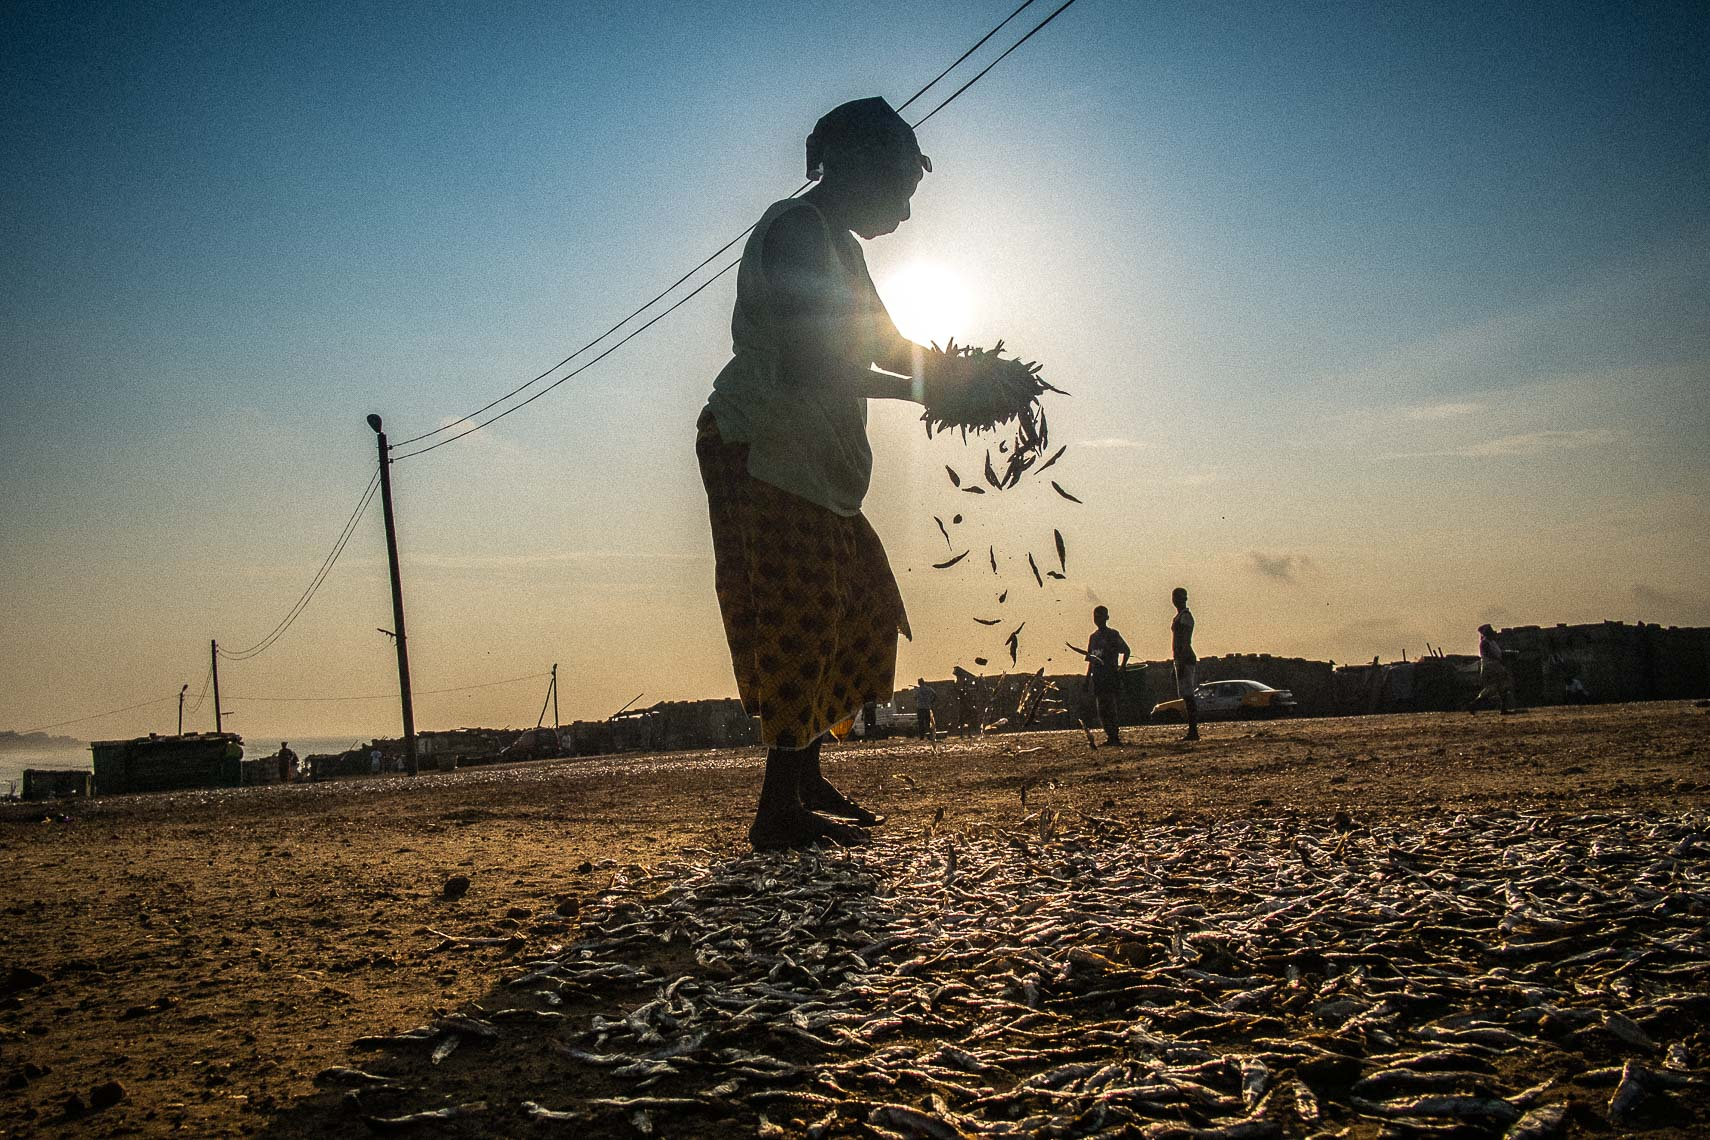 patrick_cavan_brown_ghana_teshie_nungua_africa_fishing_village-5385